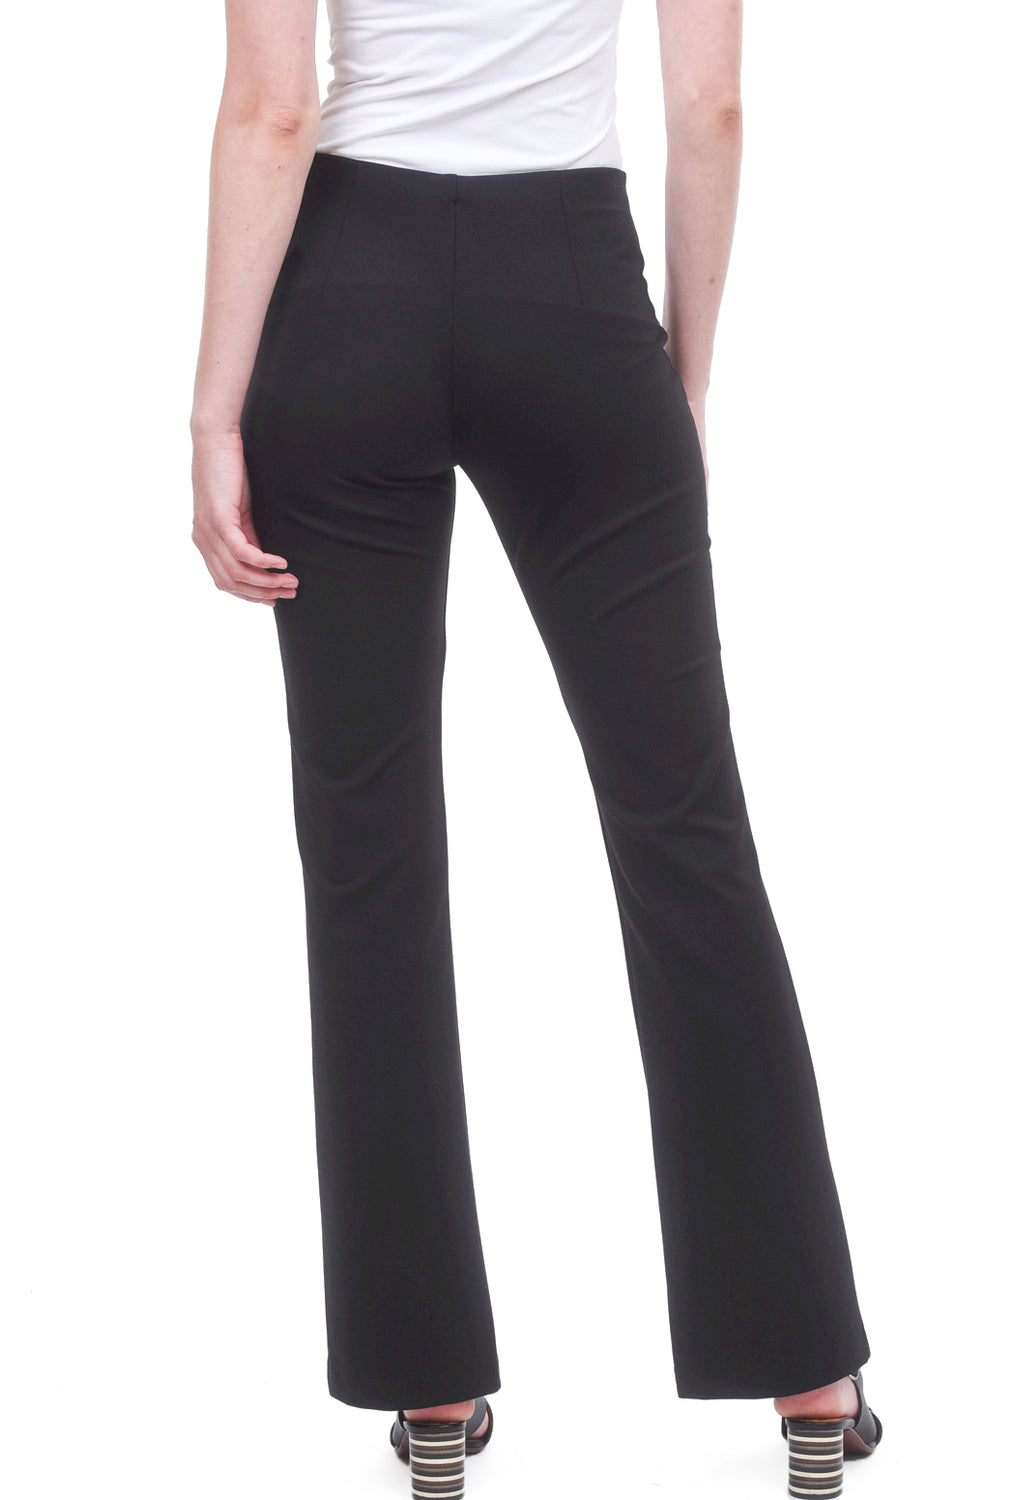 Equestrian Ponte Knit Miley Pants, Black